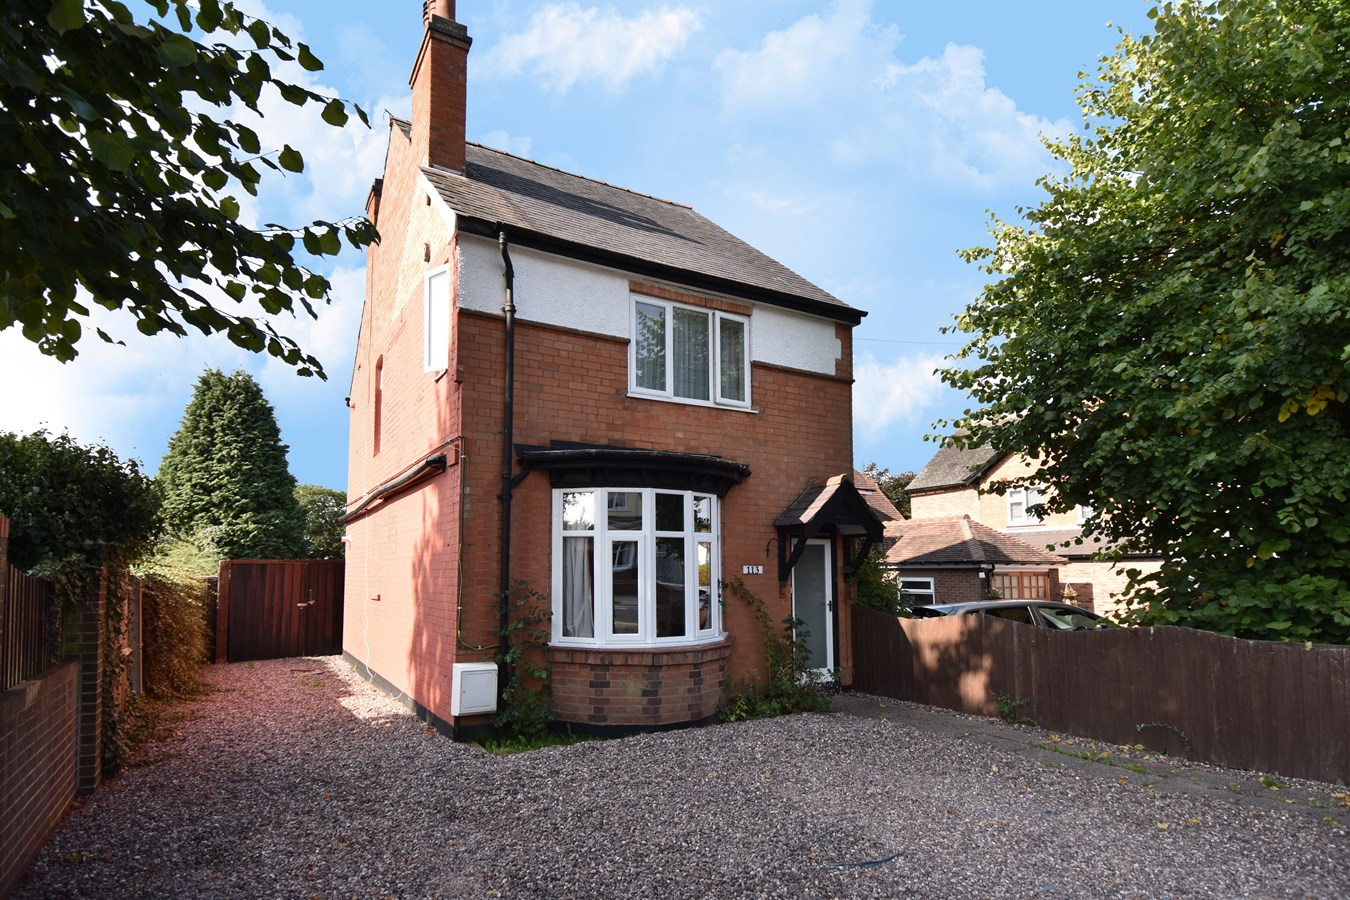 3 Bedroom Property For Sale In Birchfield Road Redditch B97 Offers In Excess Of 270000